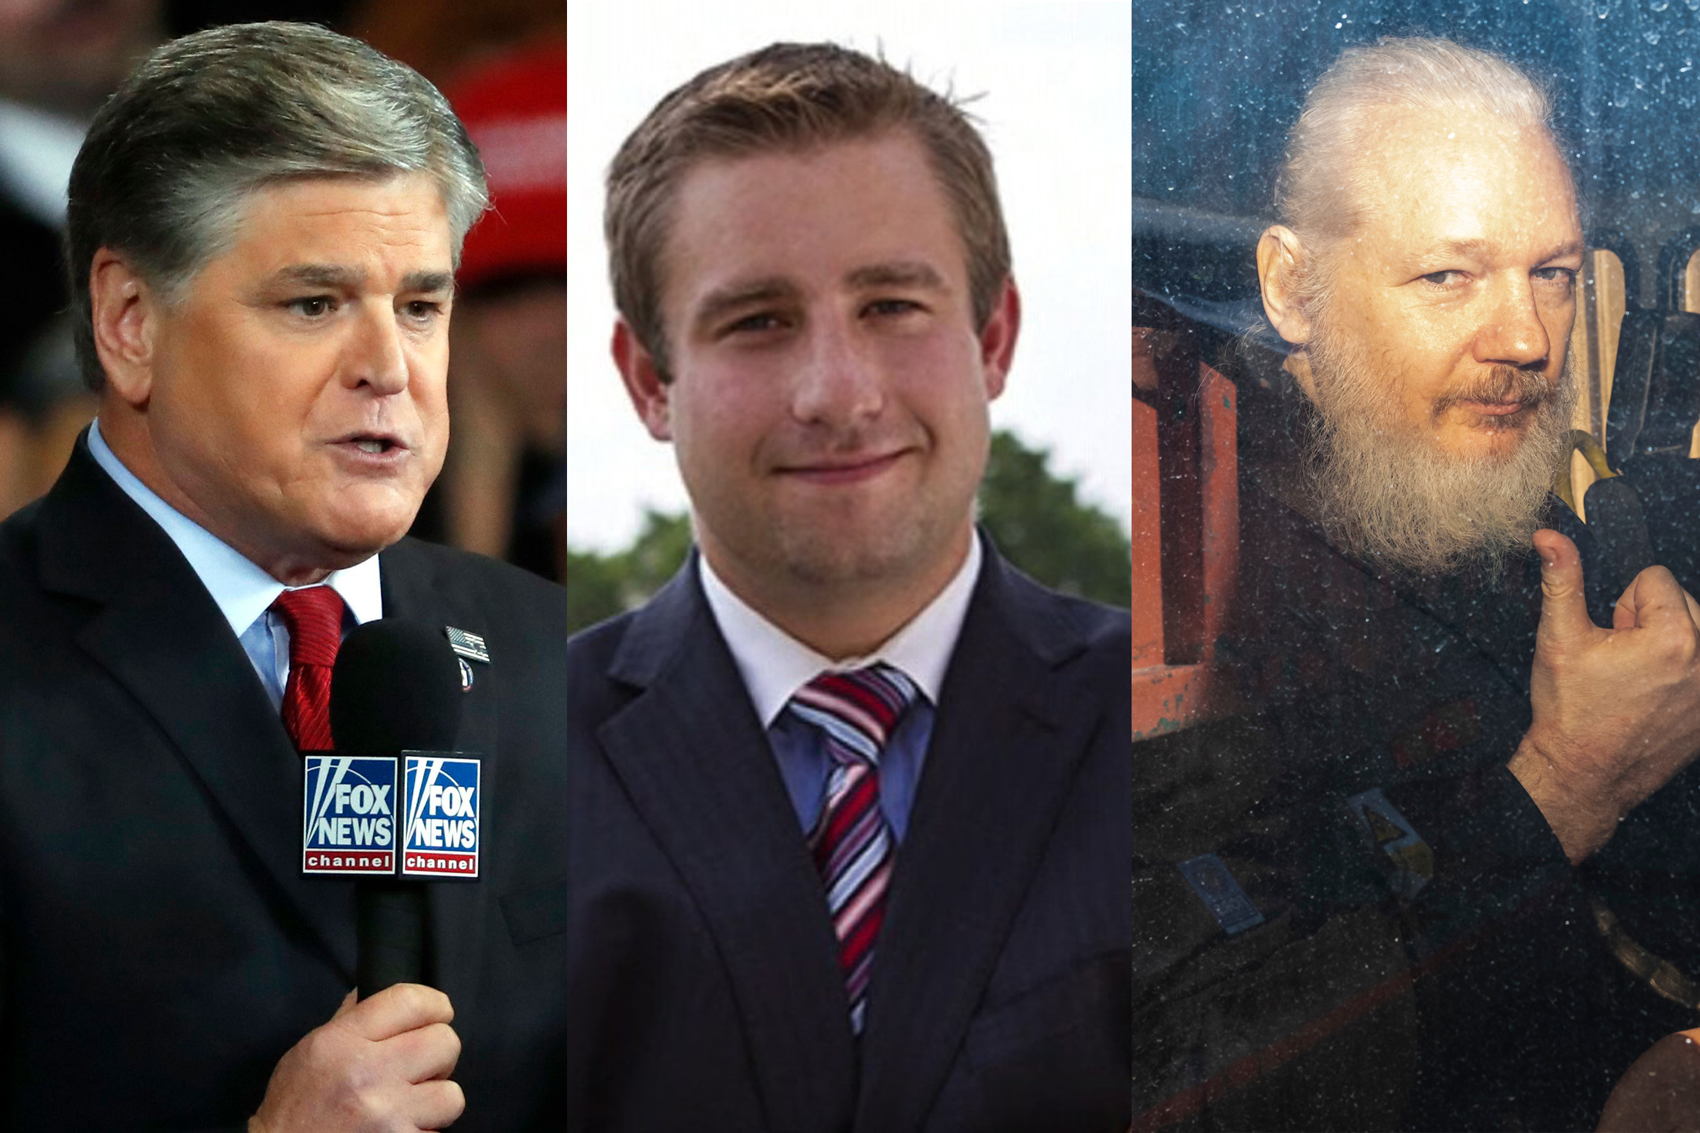 WikiLeaks and Fox News Are Silent on the Debunked Seth Rich Conspiracy Theory